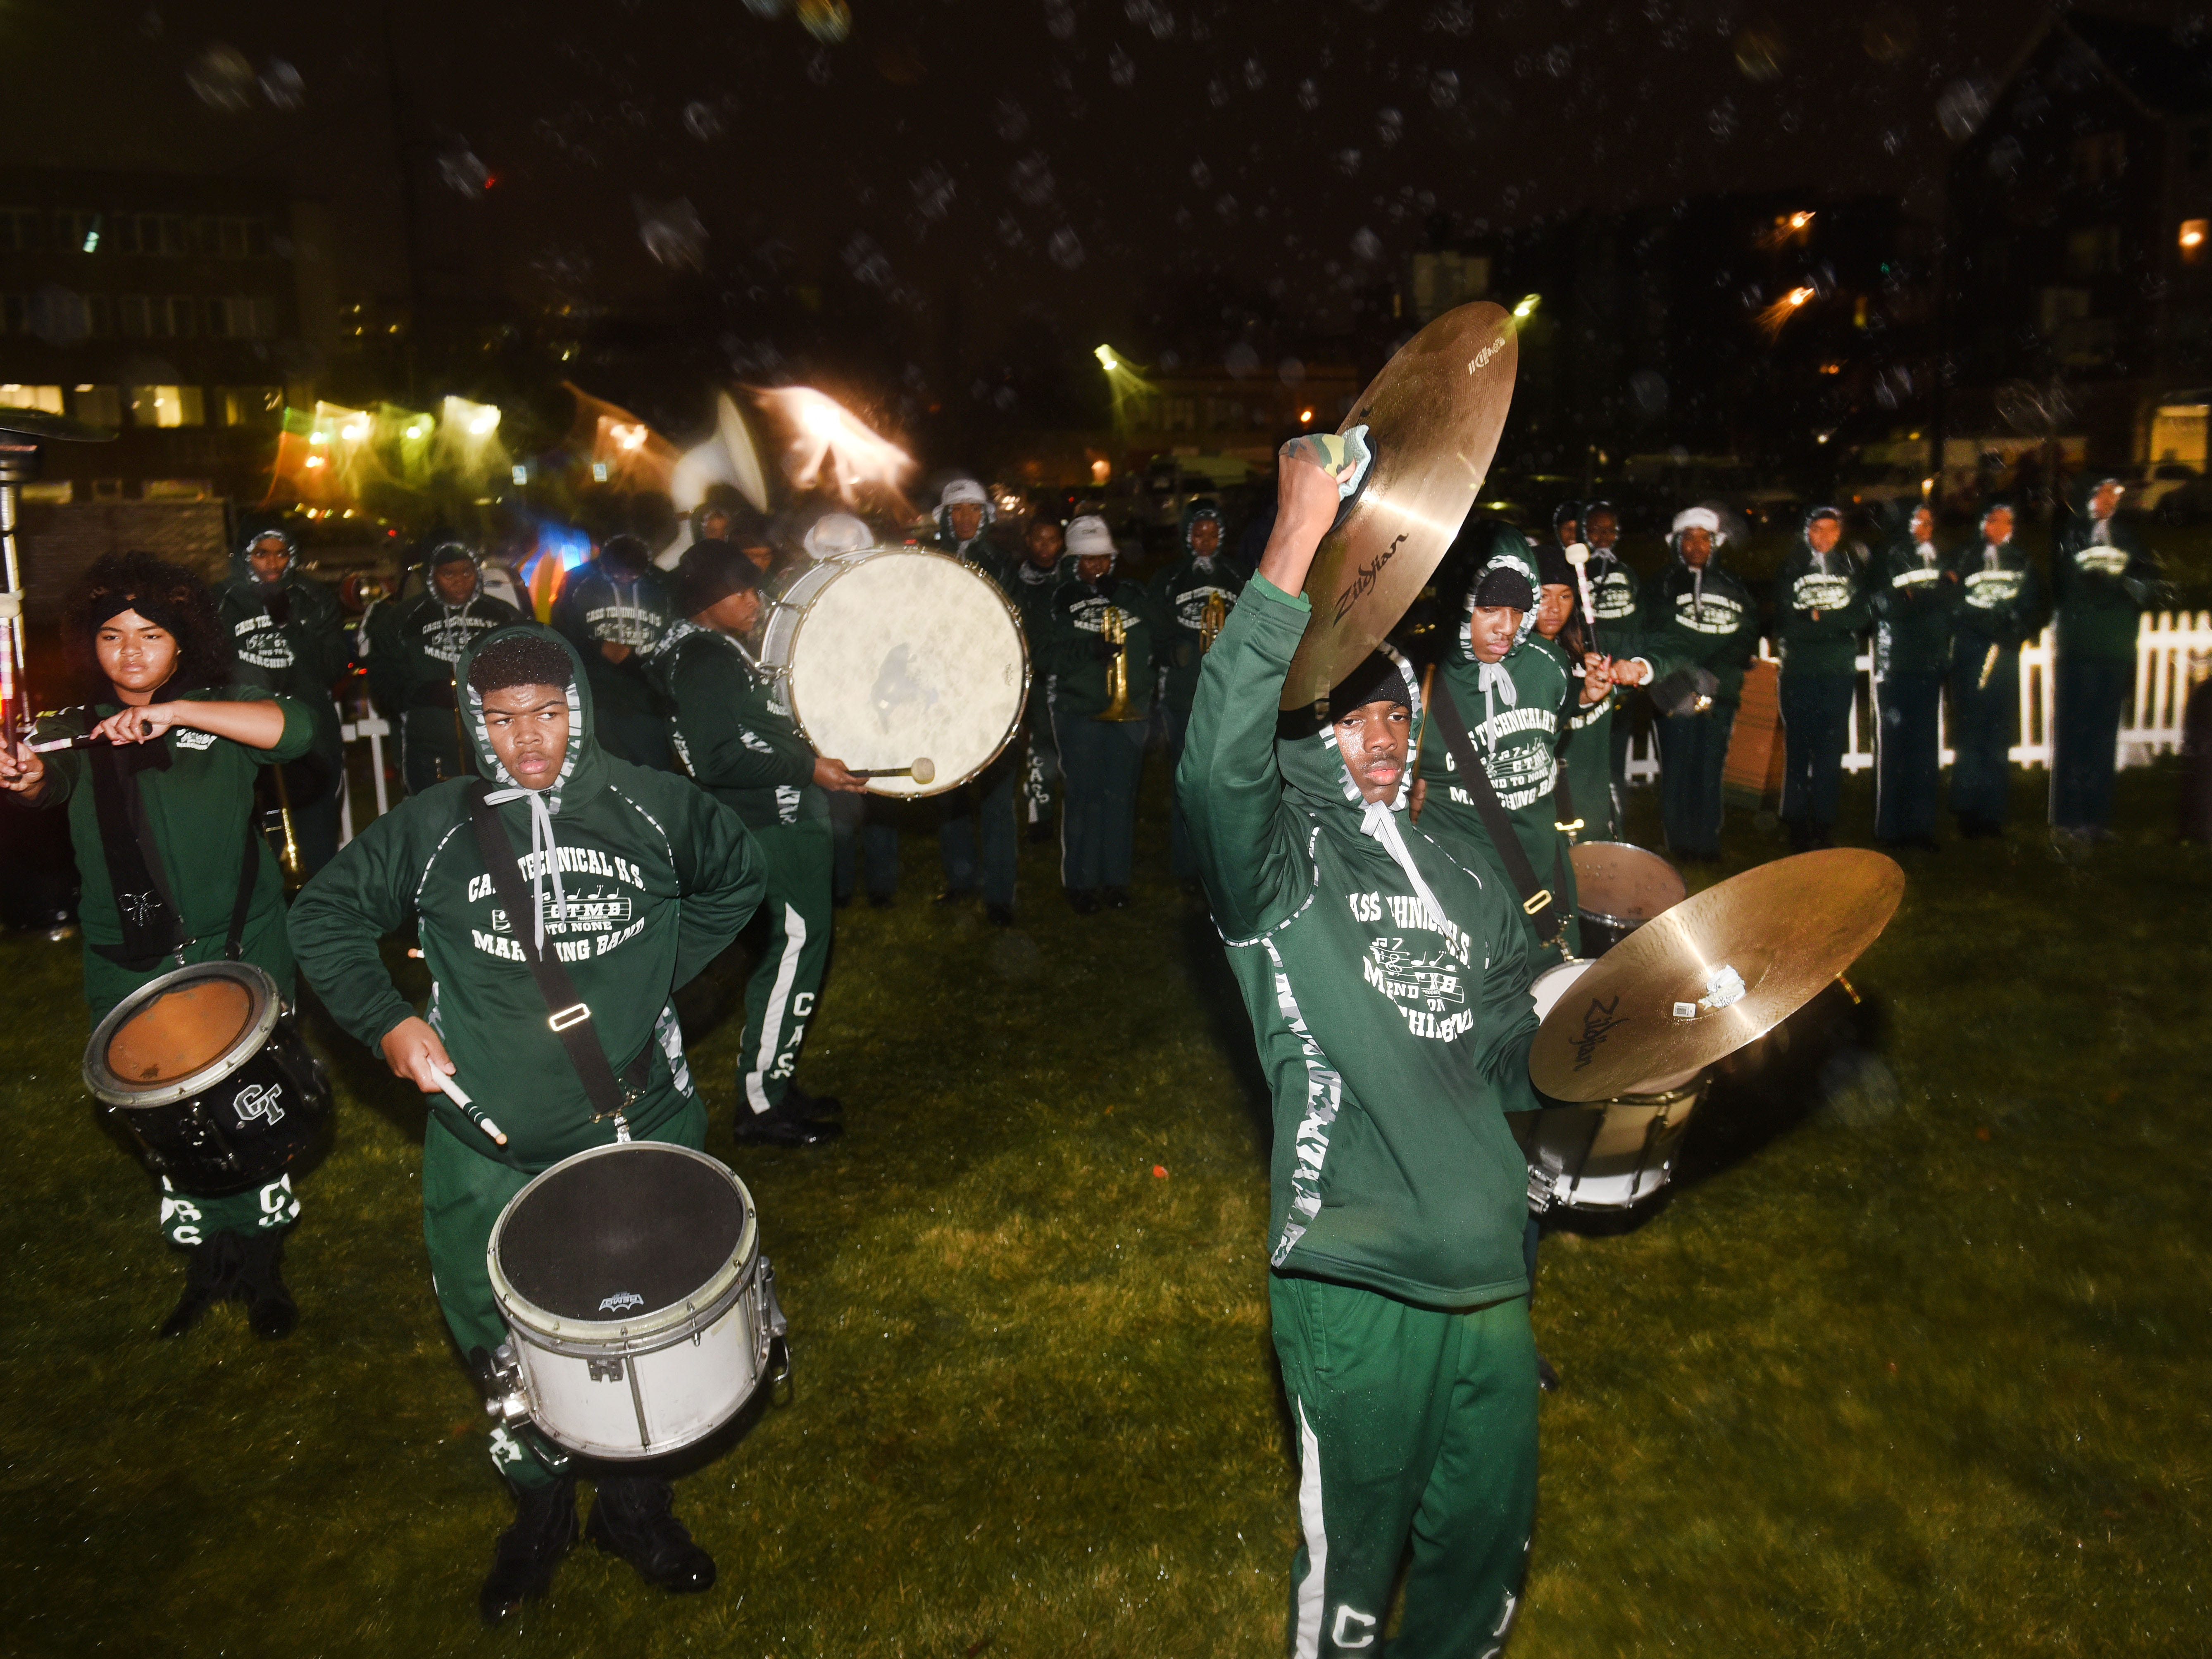 Members of the Cass Tech High School Marching Band perform in heavy rain during Noel Night along Woodward and Warren Avenue.